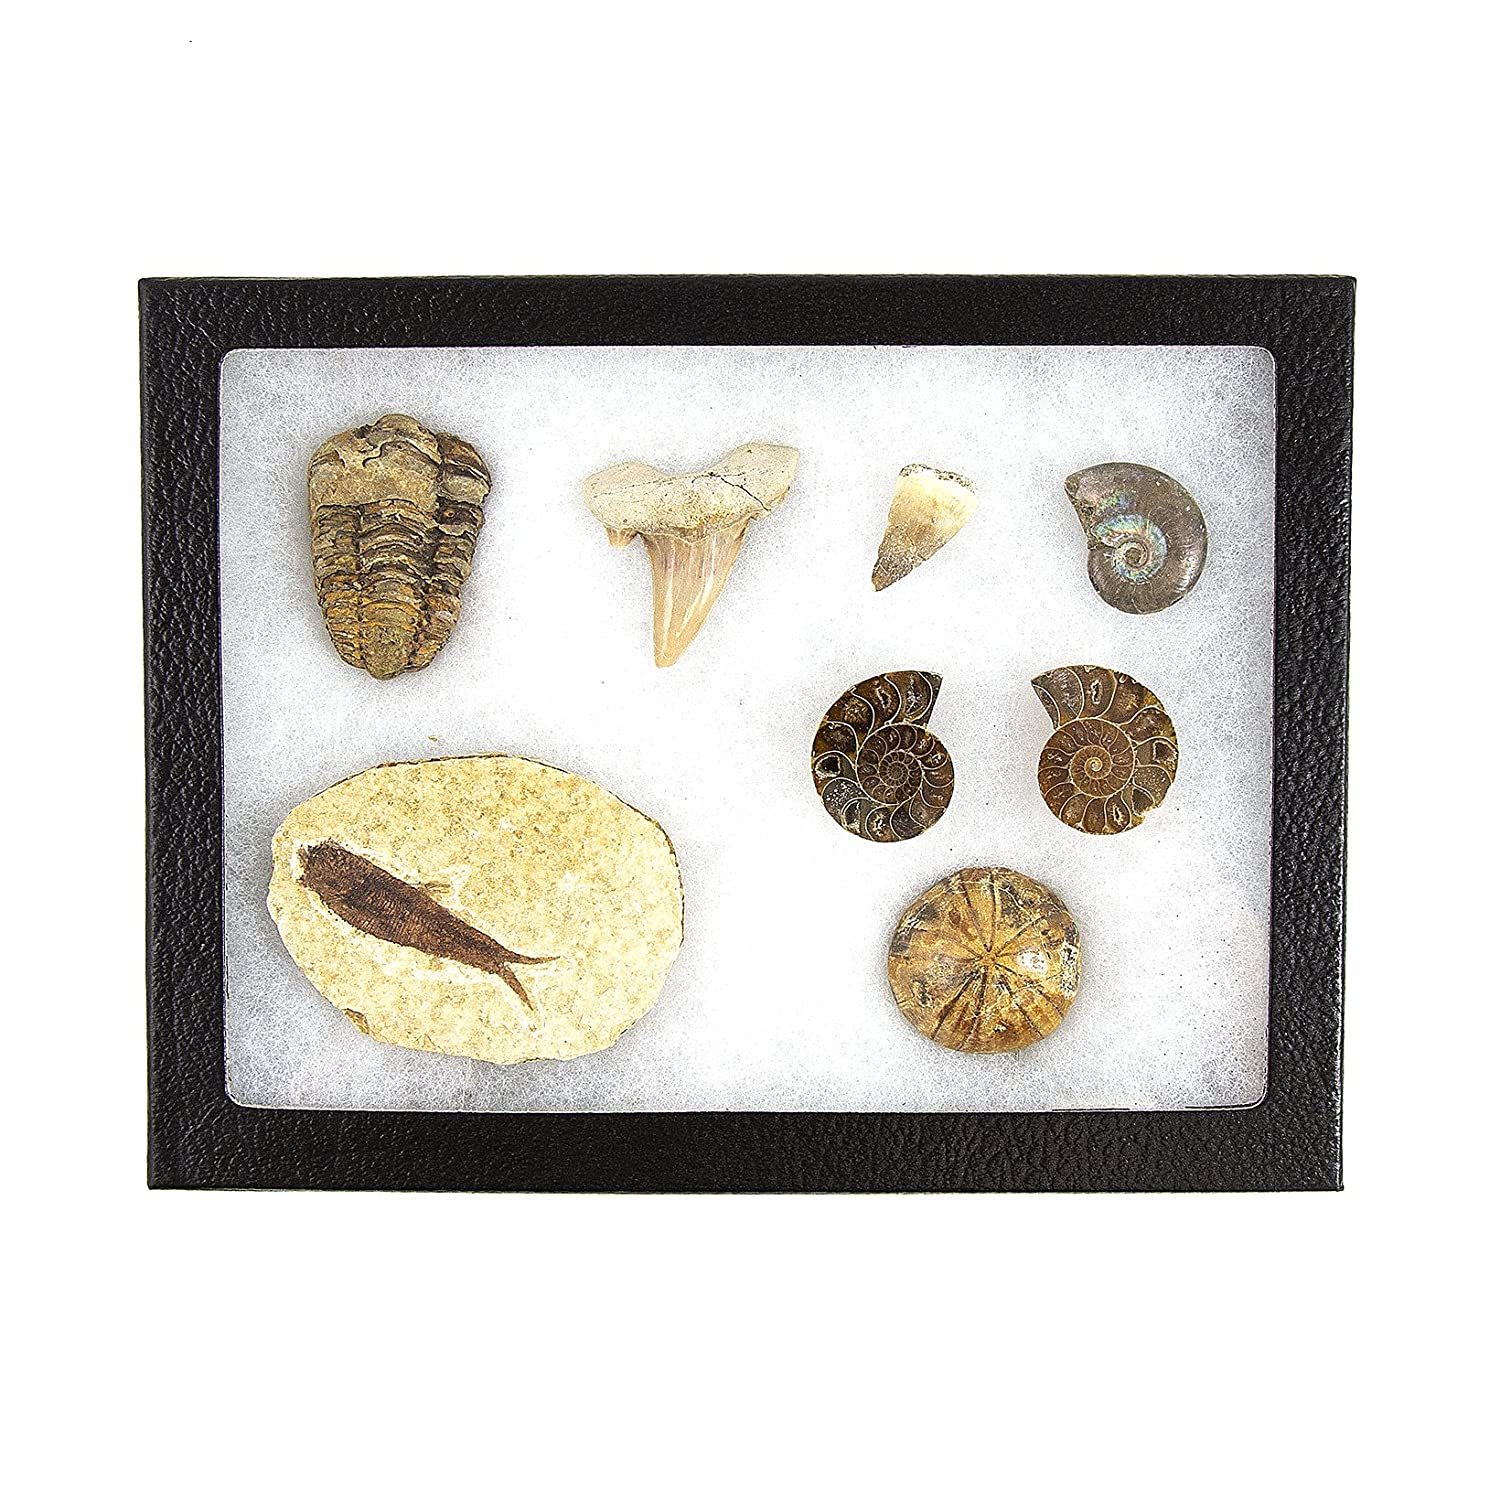 Gift Box Includes Identification Book Dancing Bear Fossil Fish Kids Learn STEM Display Stand Genuine Specimen 50 Million Years Old Mined and Made in USA Educational Description Card Knightia